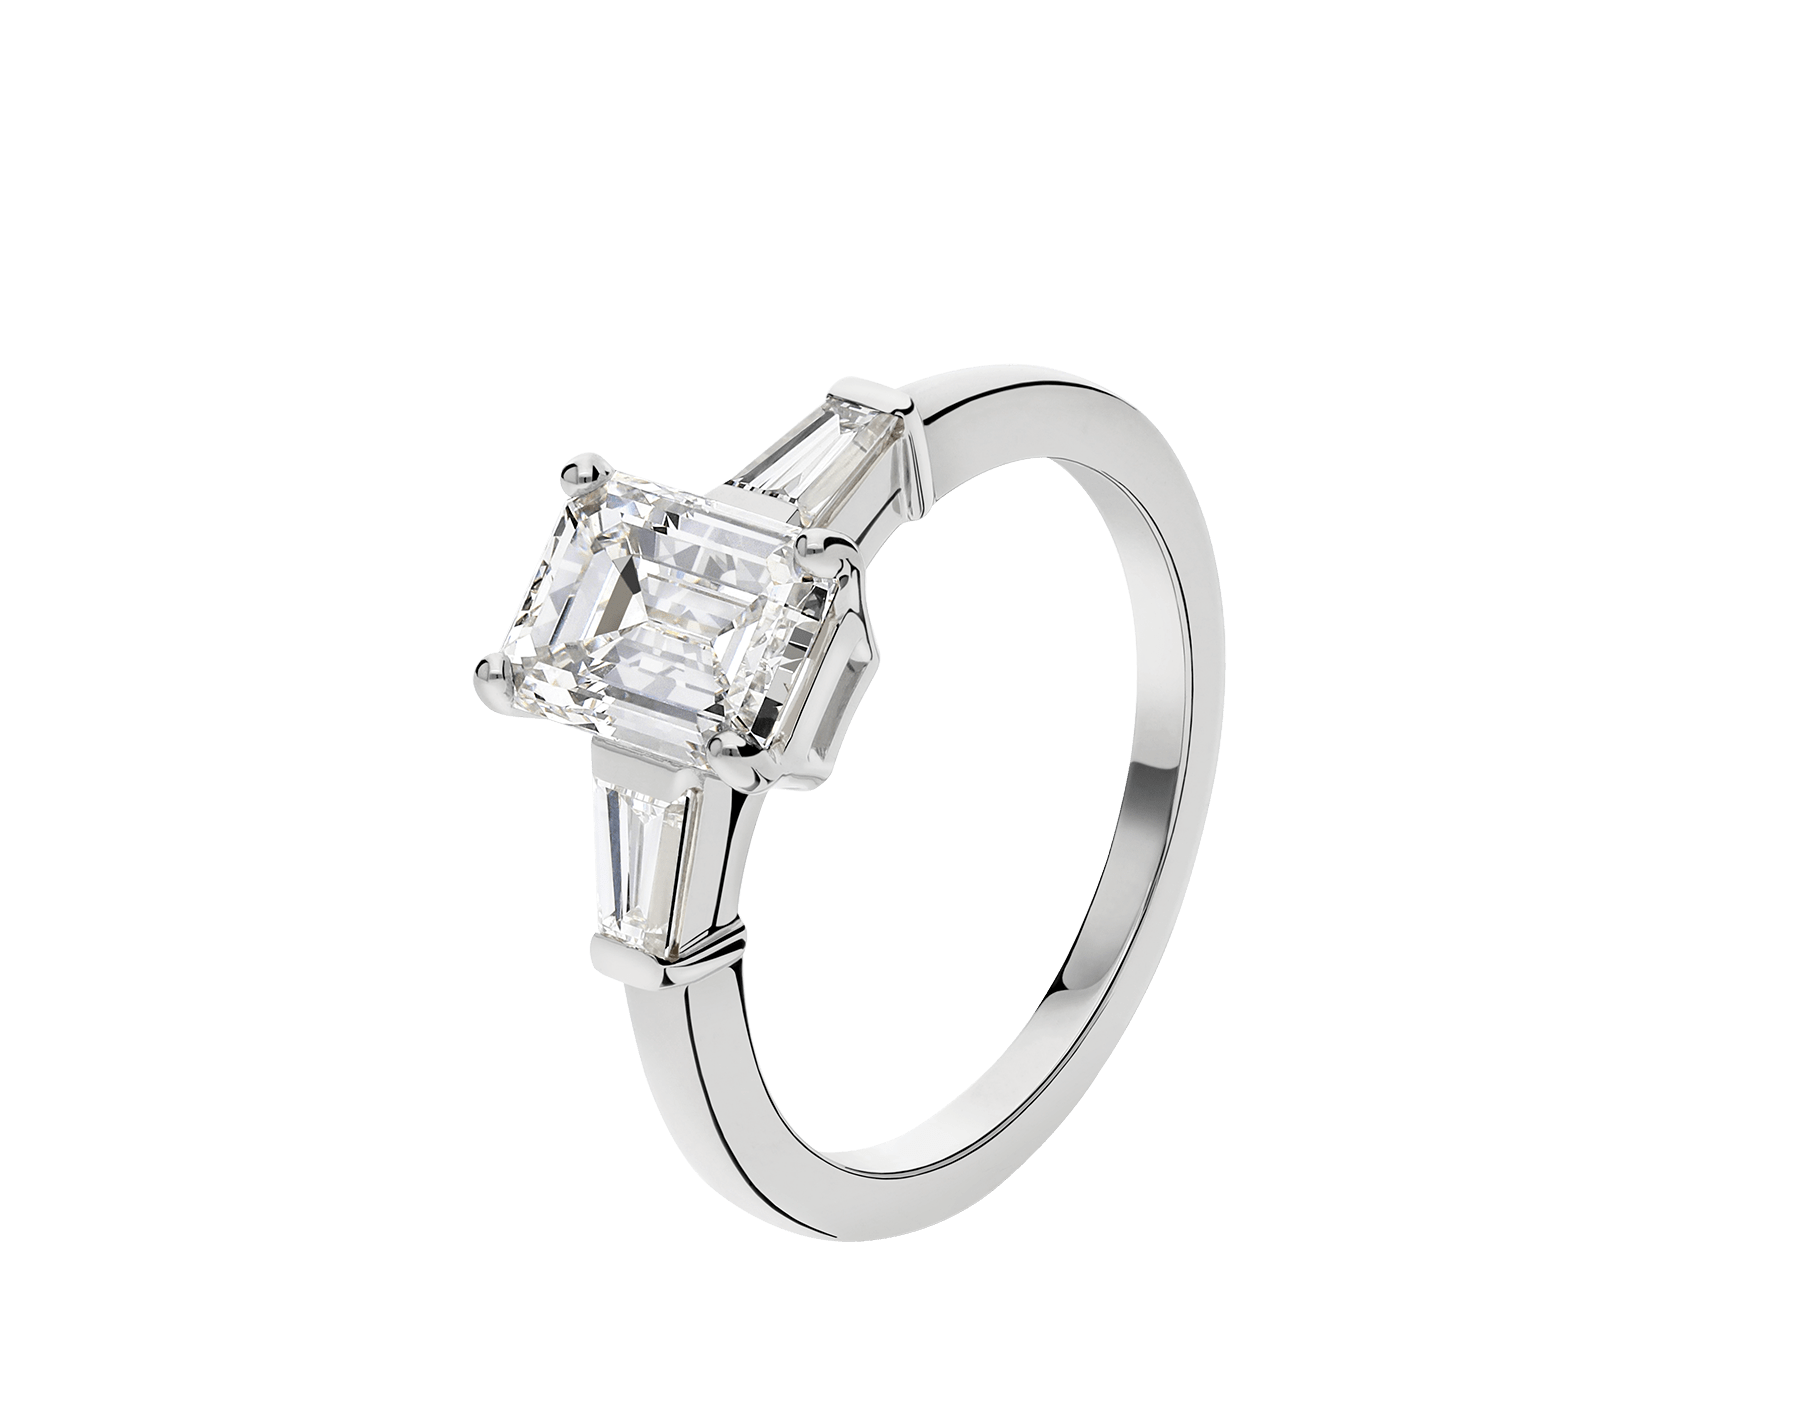 Griffe solitaire ring in platinum with one emerald cut diamond and two side diamonds 331649 image 1